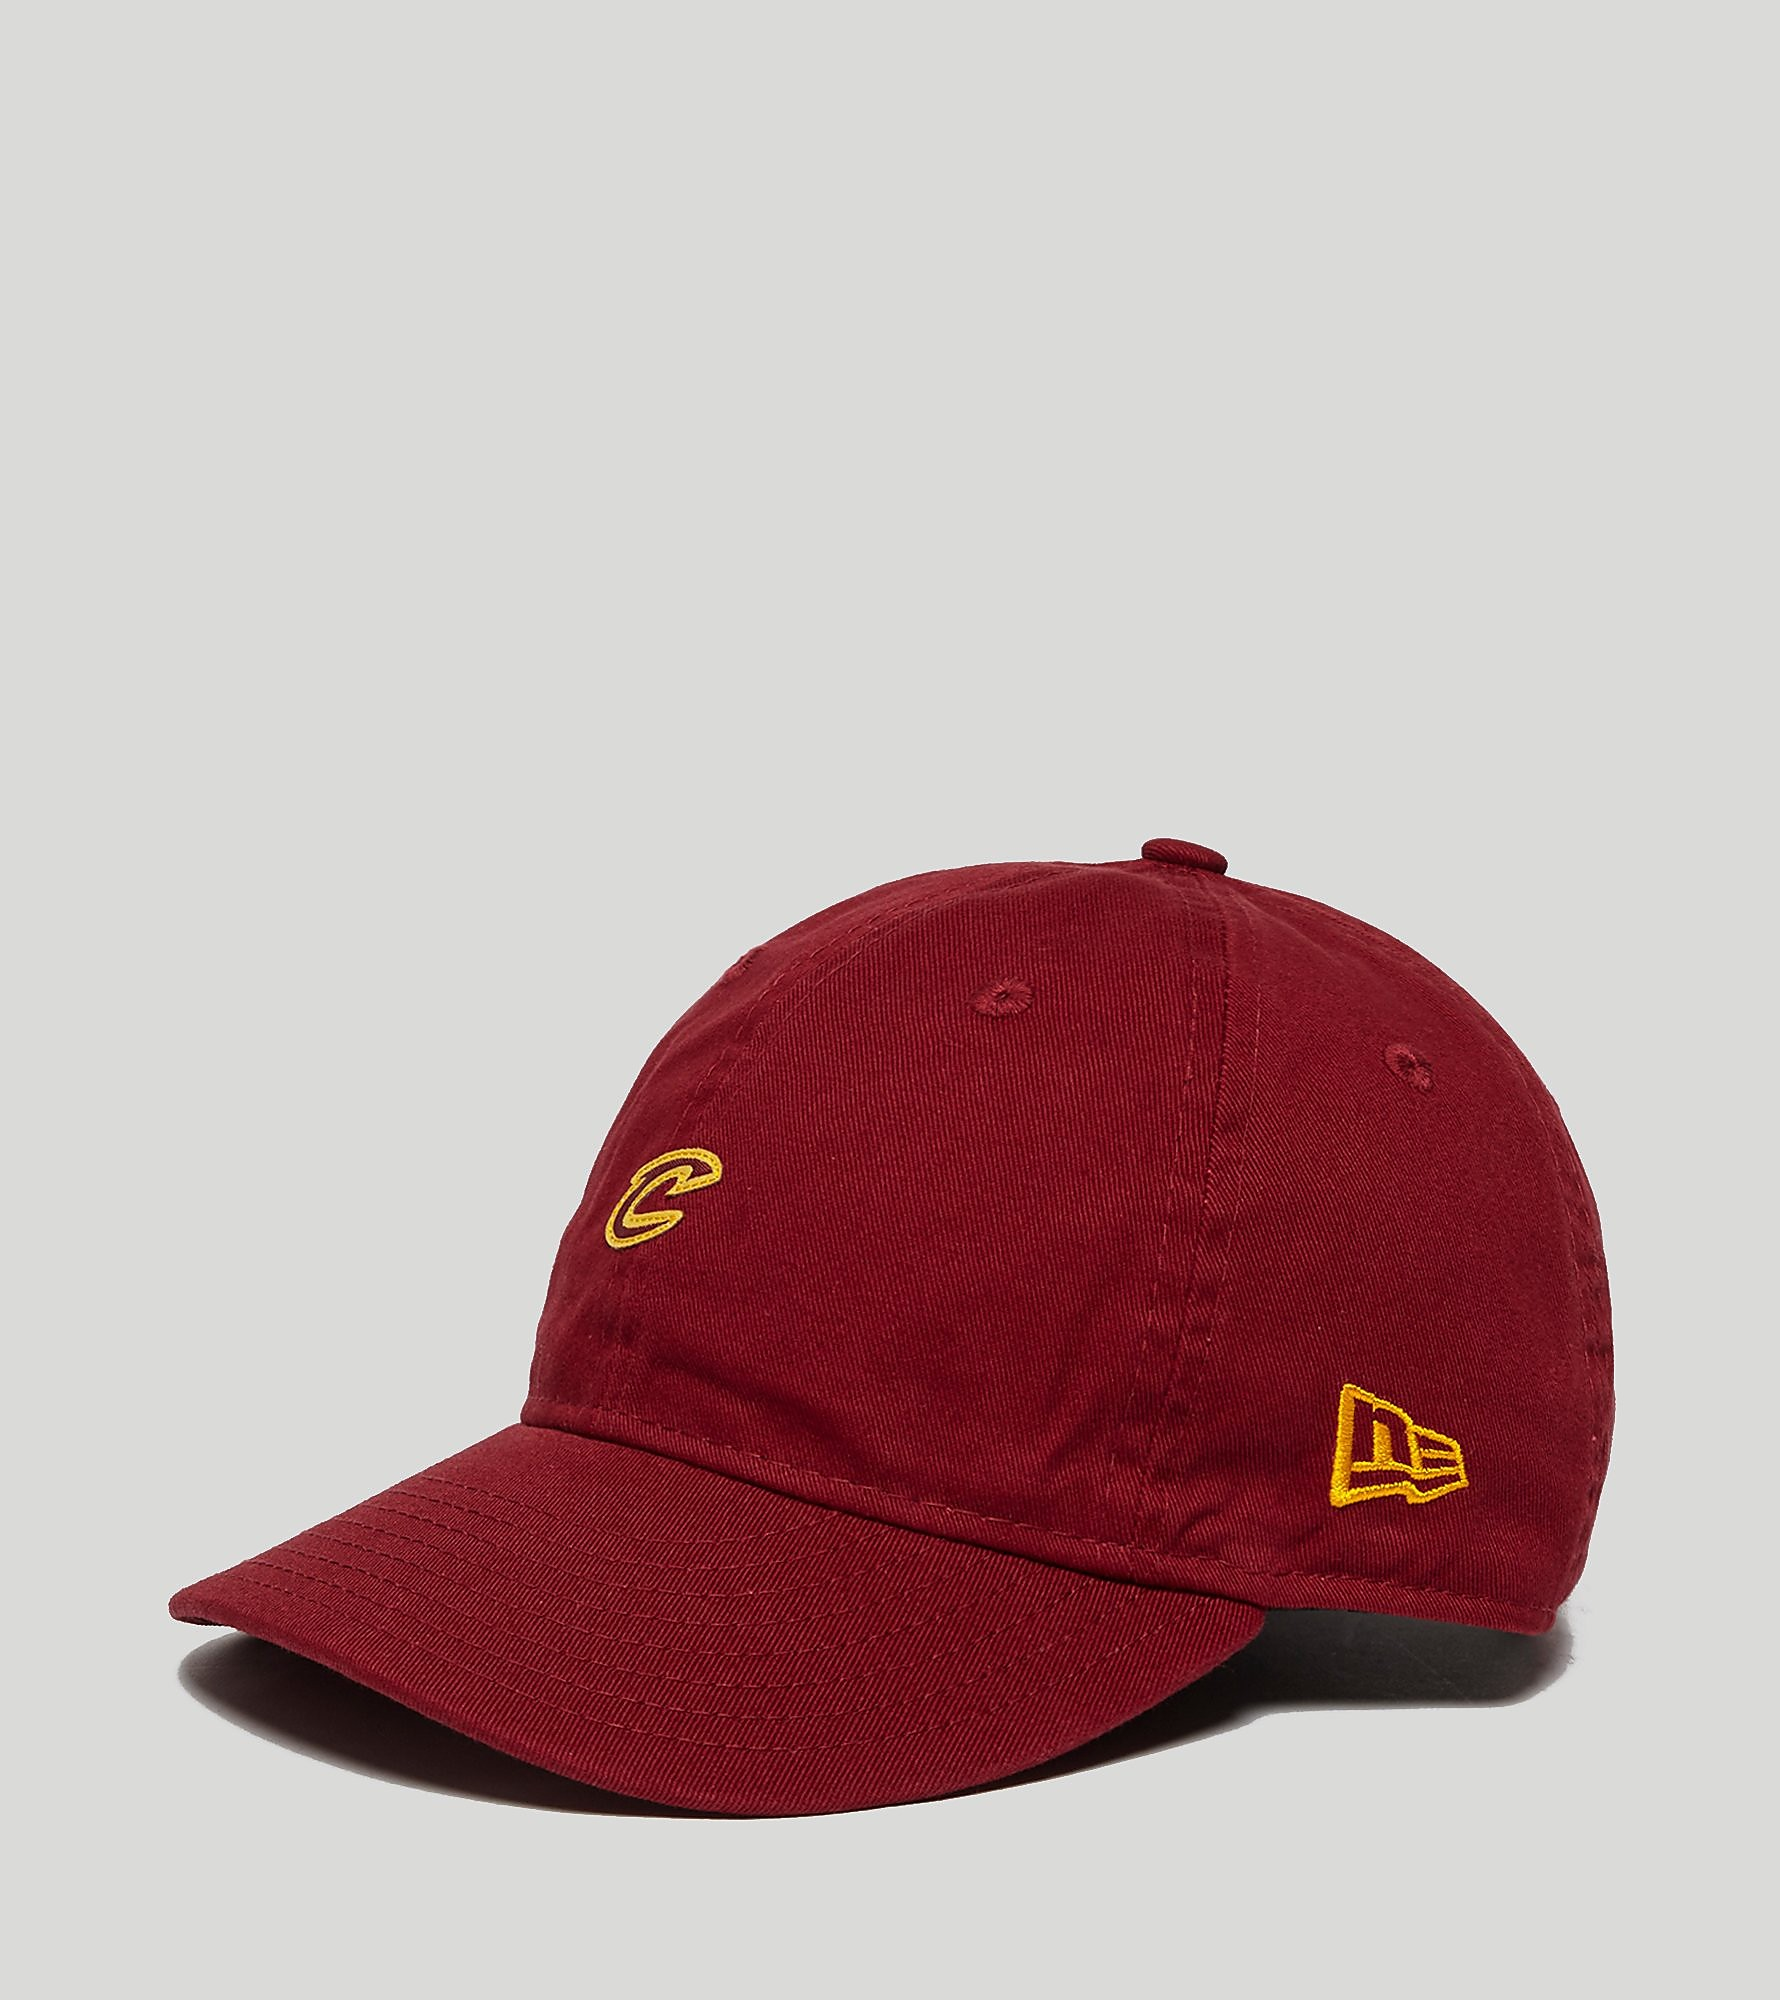 New Era 9FIFTY Cavs Strapback Cap